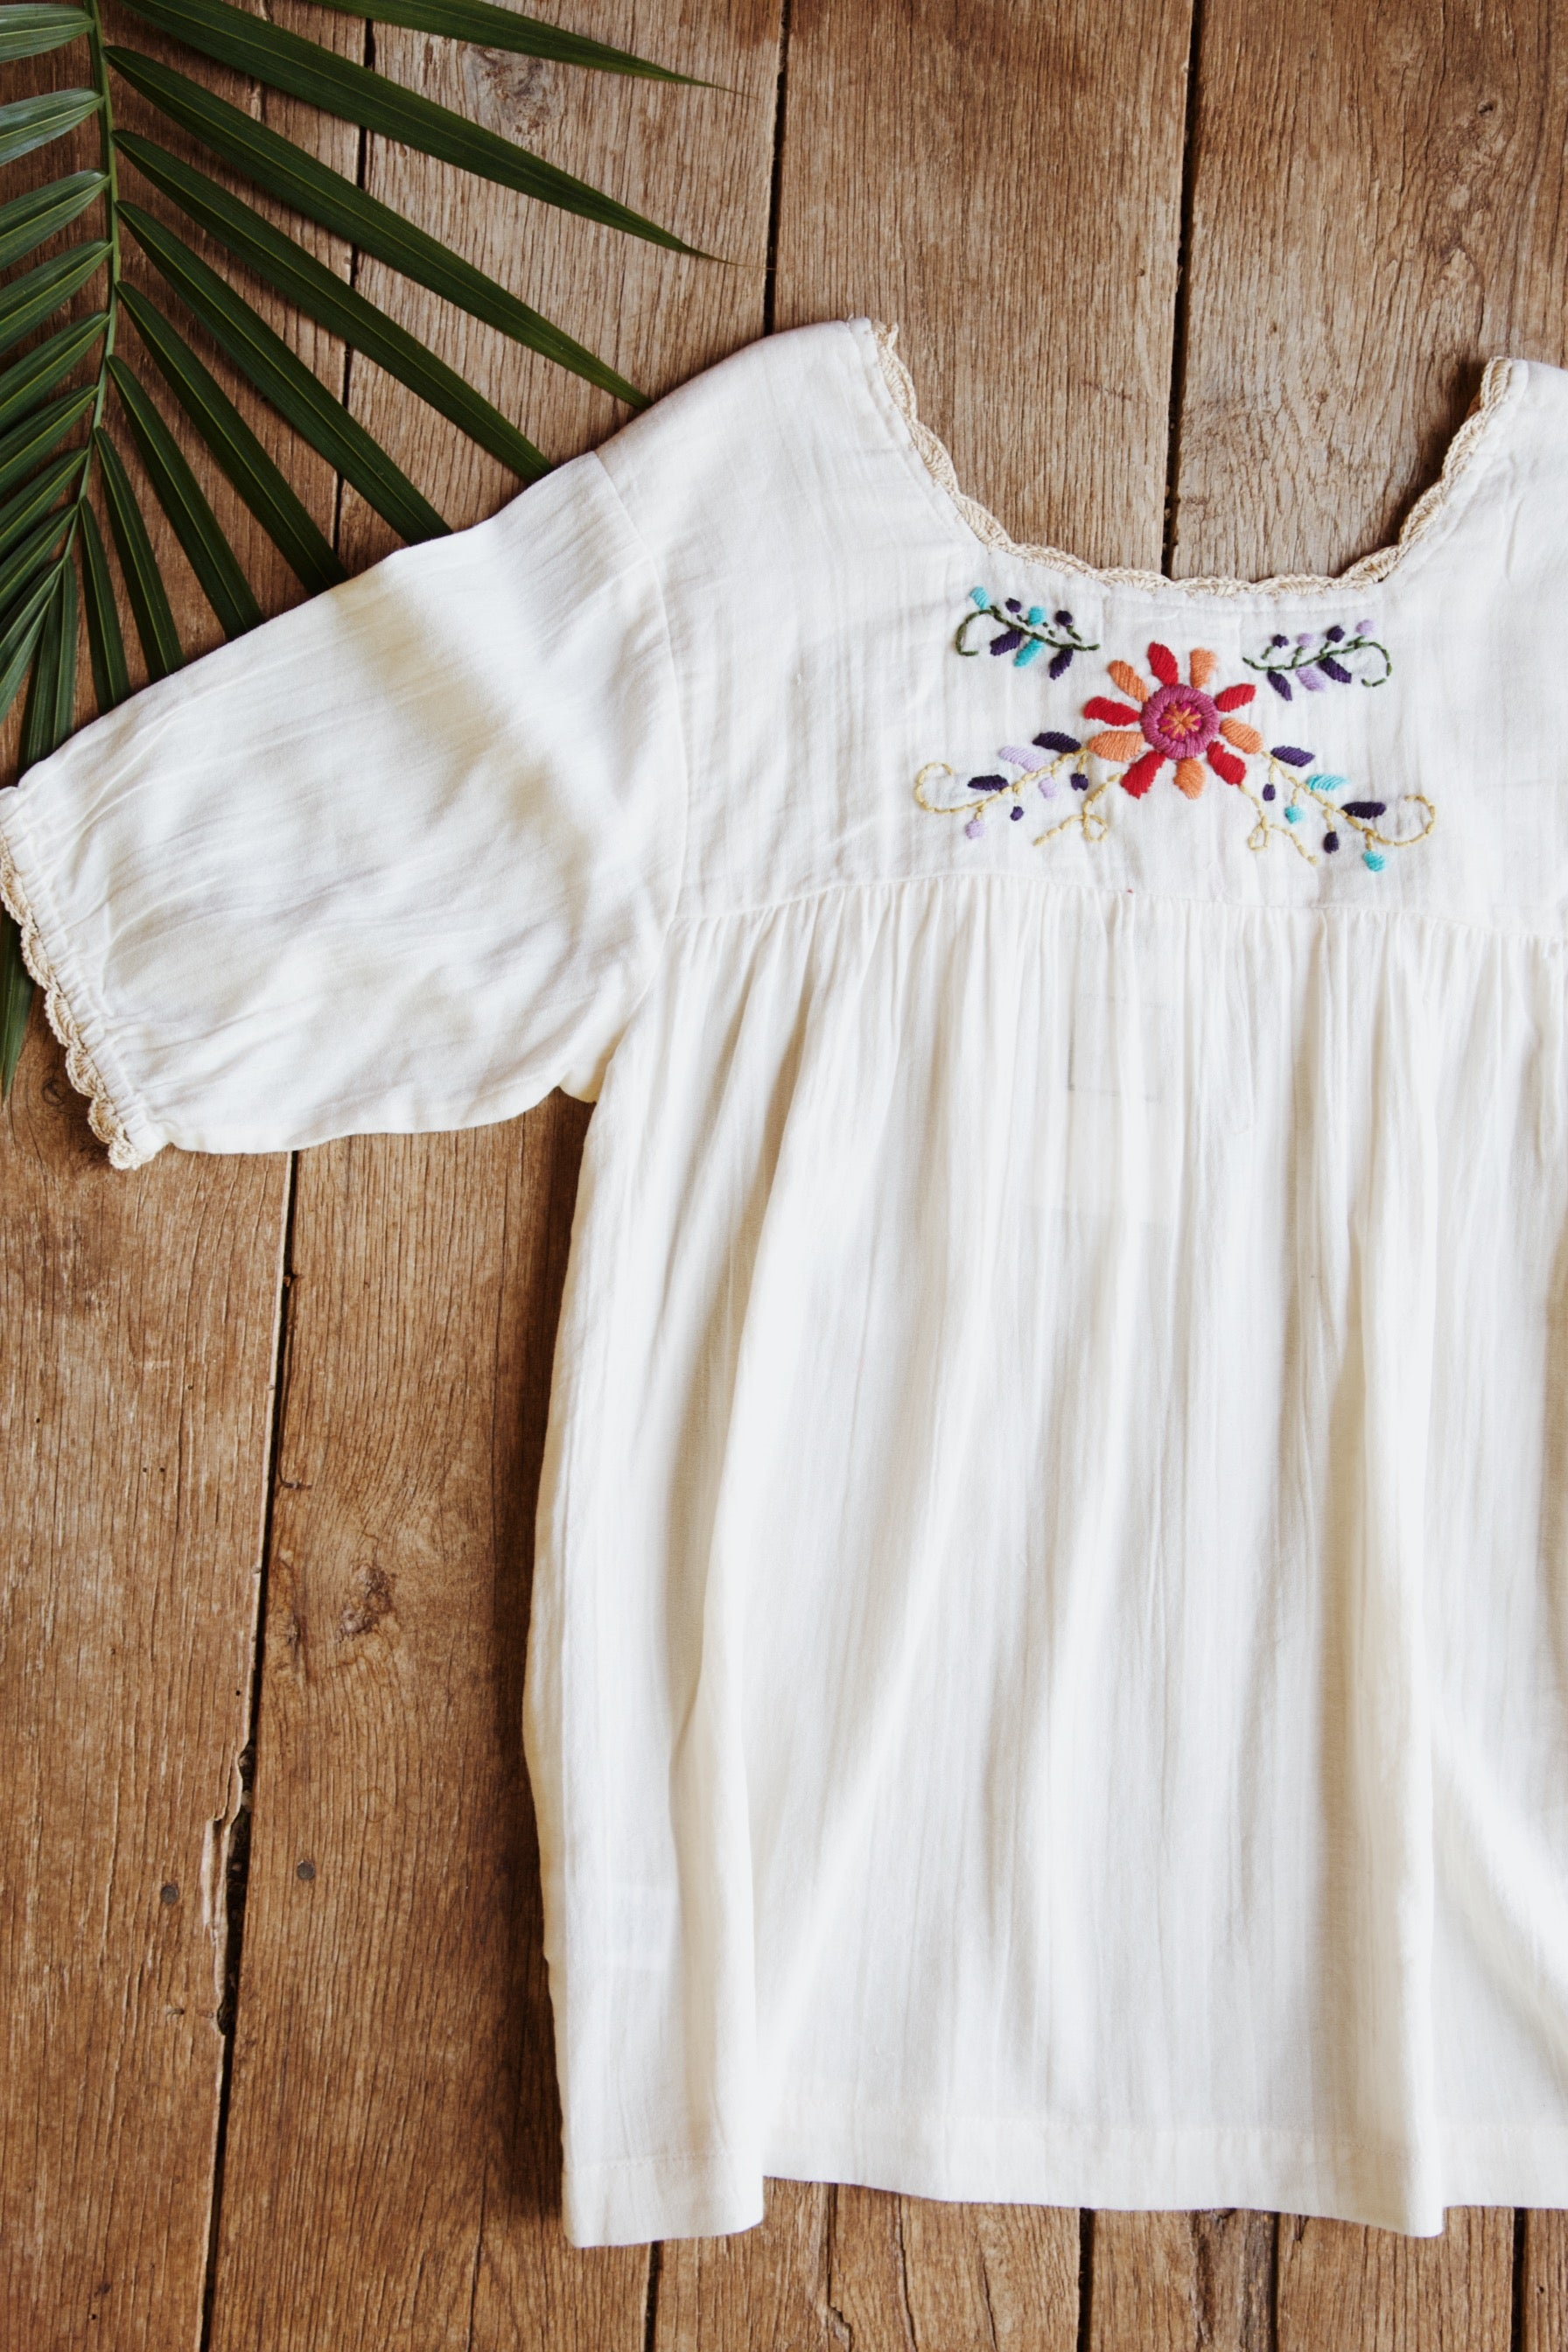 Floral Embroidered Blouse, Cream | Women's Summer Wear Clothing